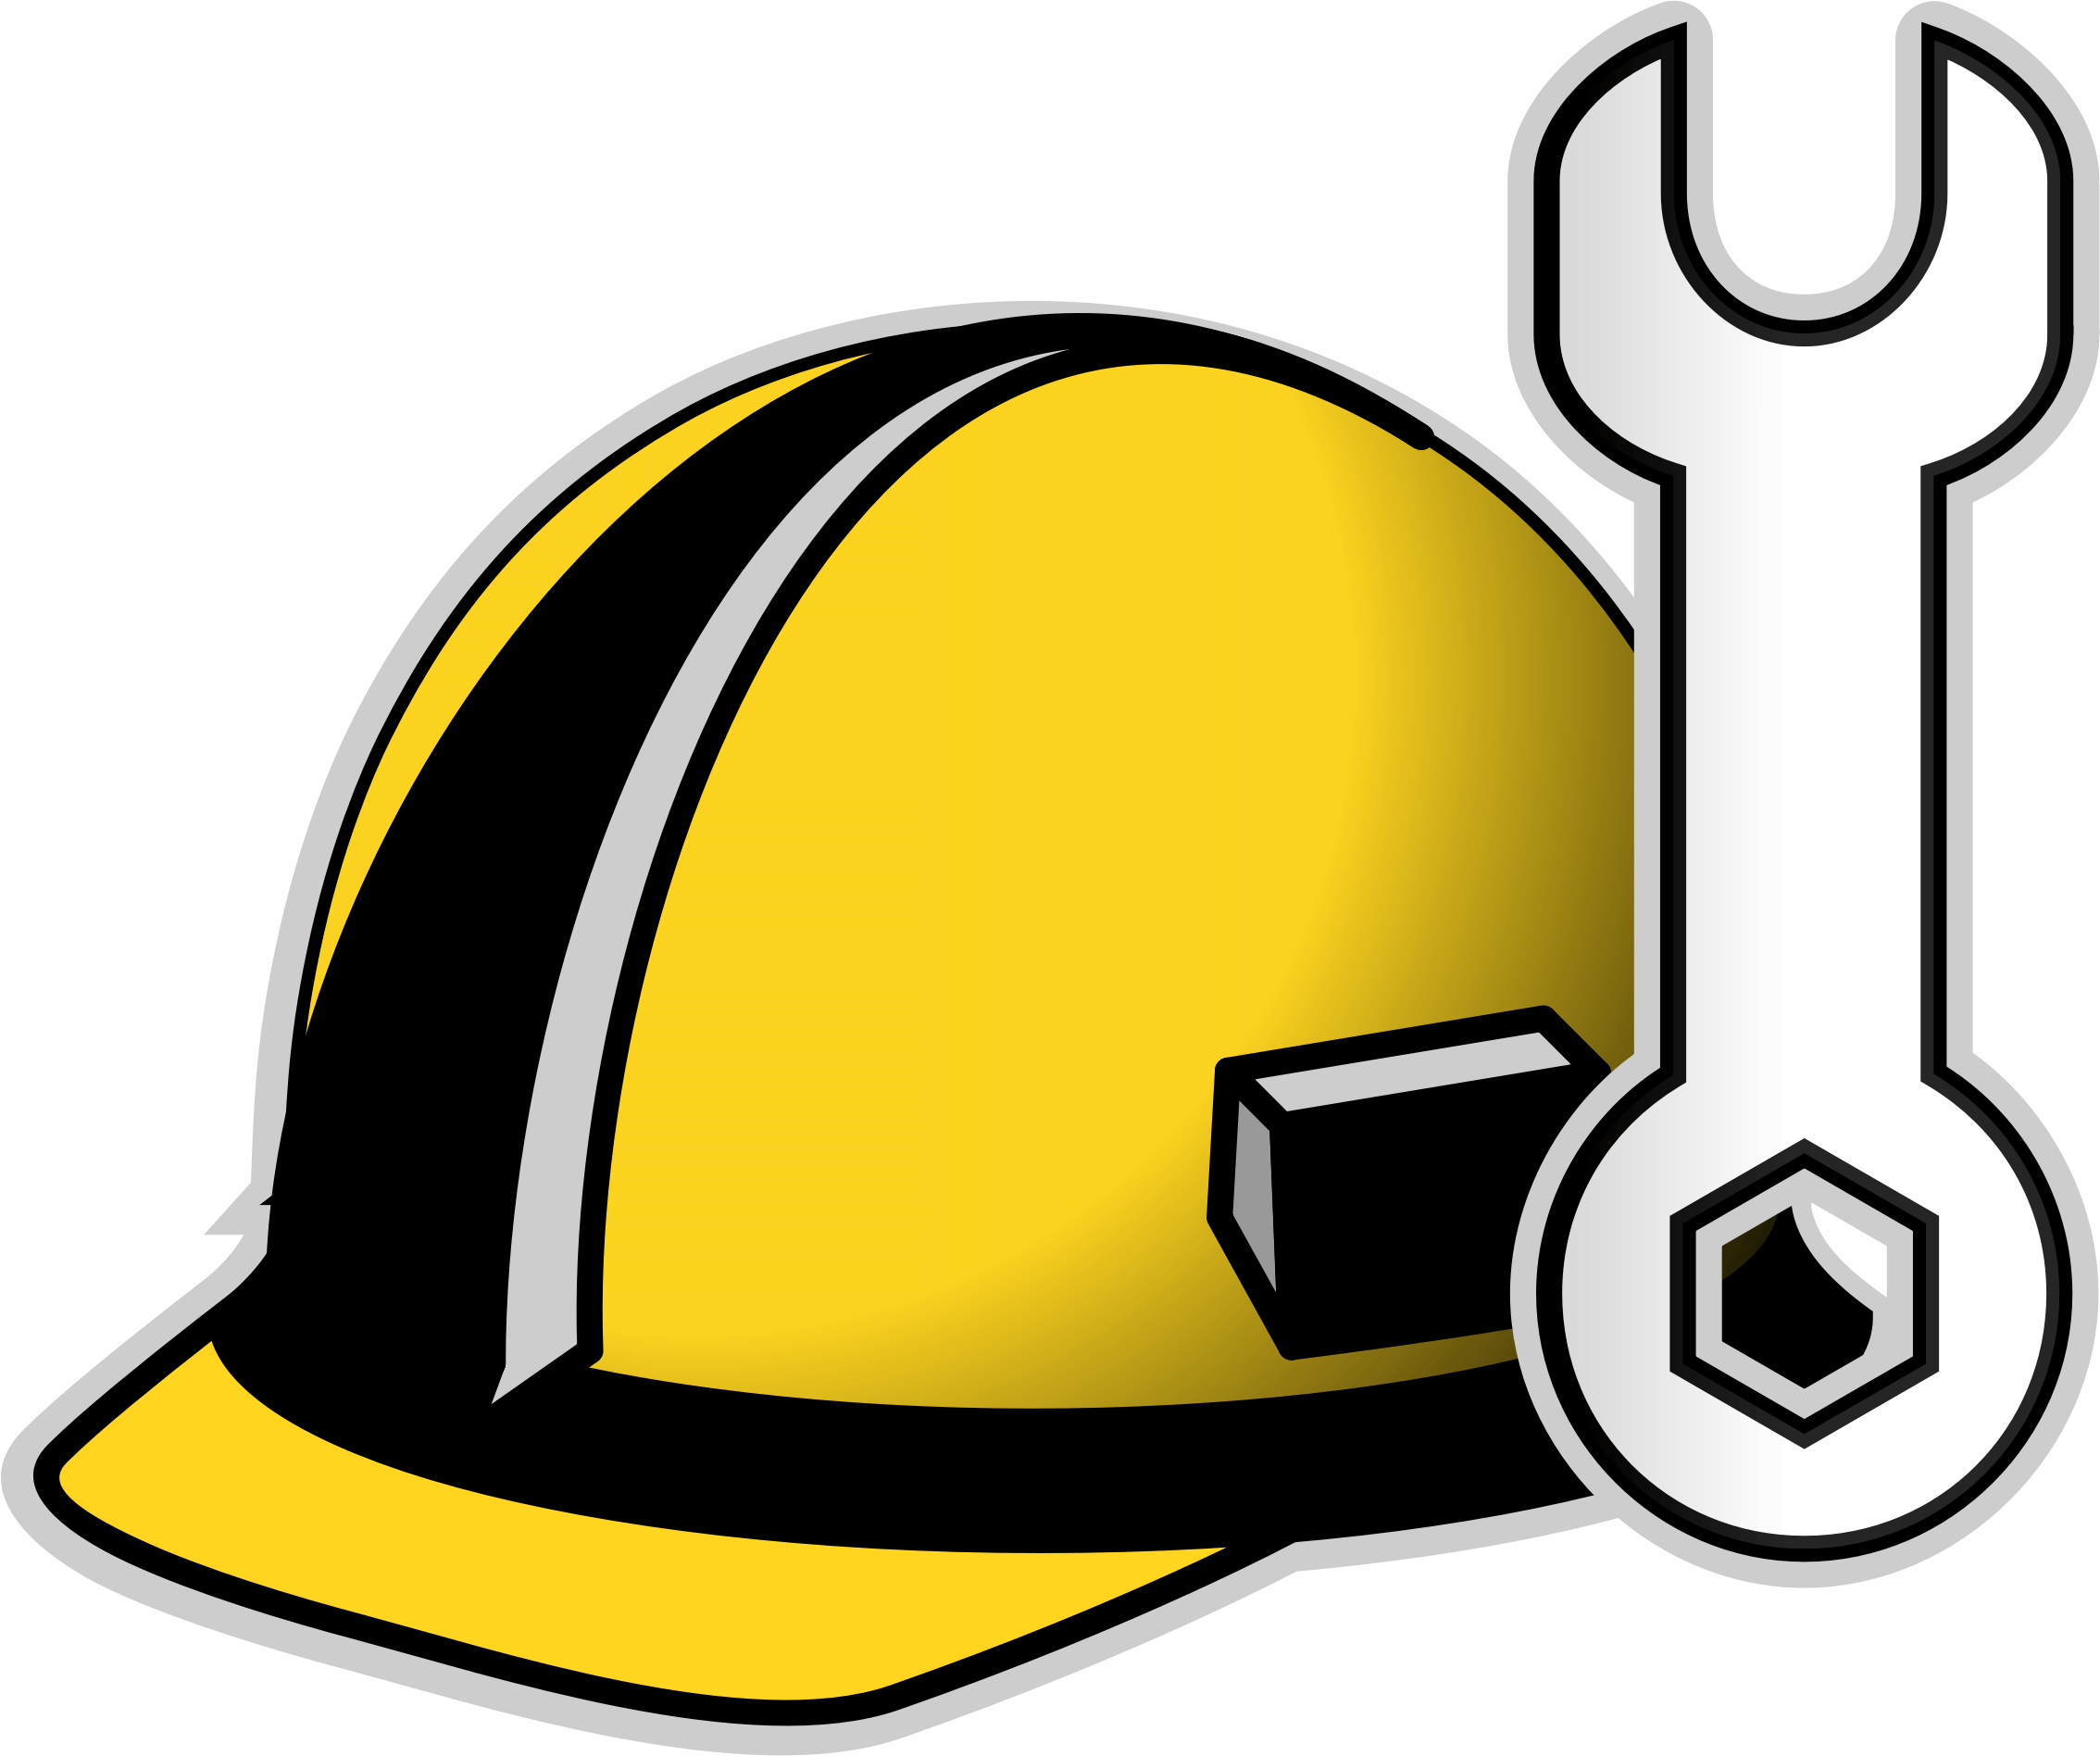 Free engineering cliparts border. Tool clipart engineer